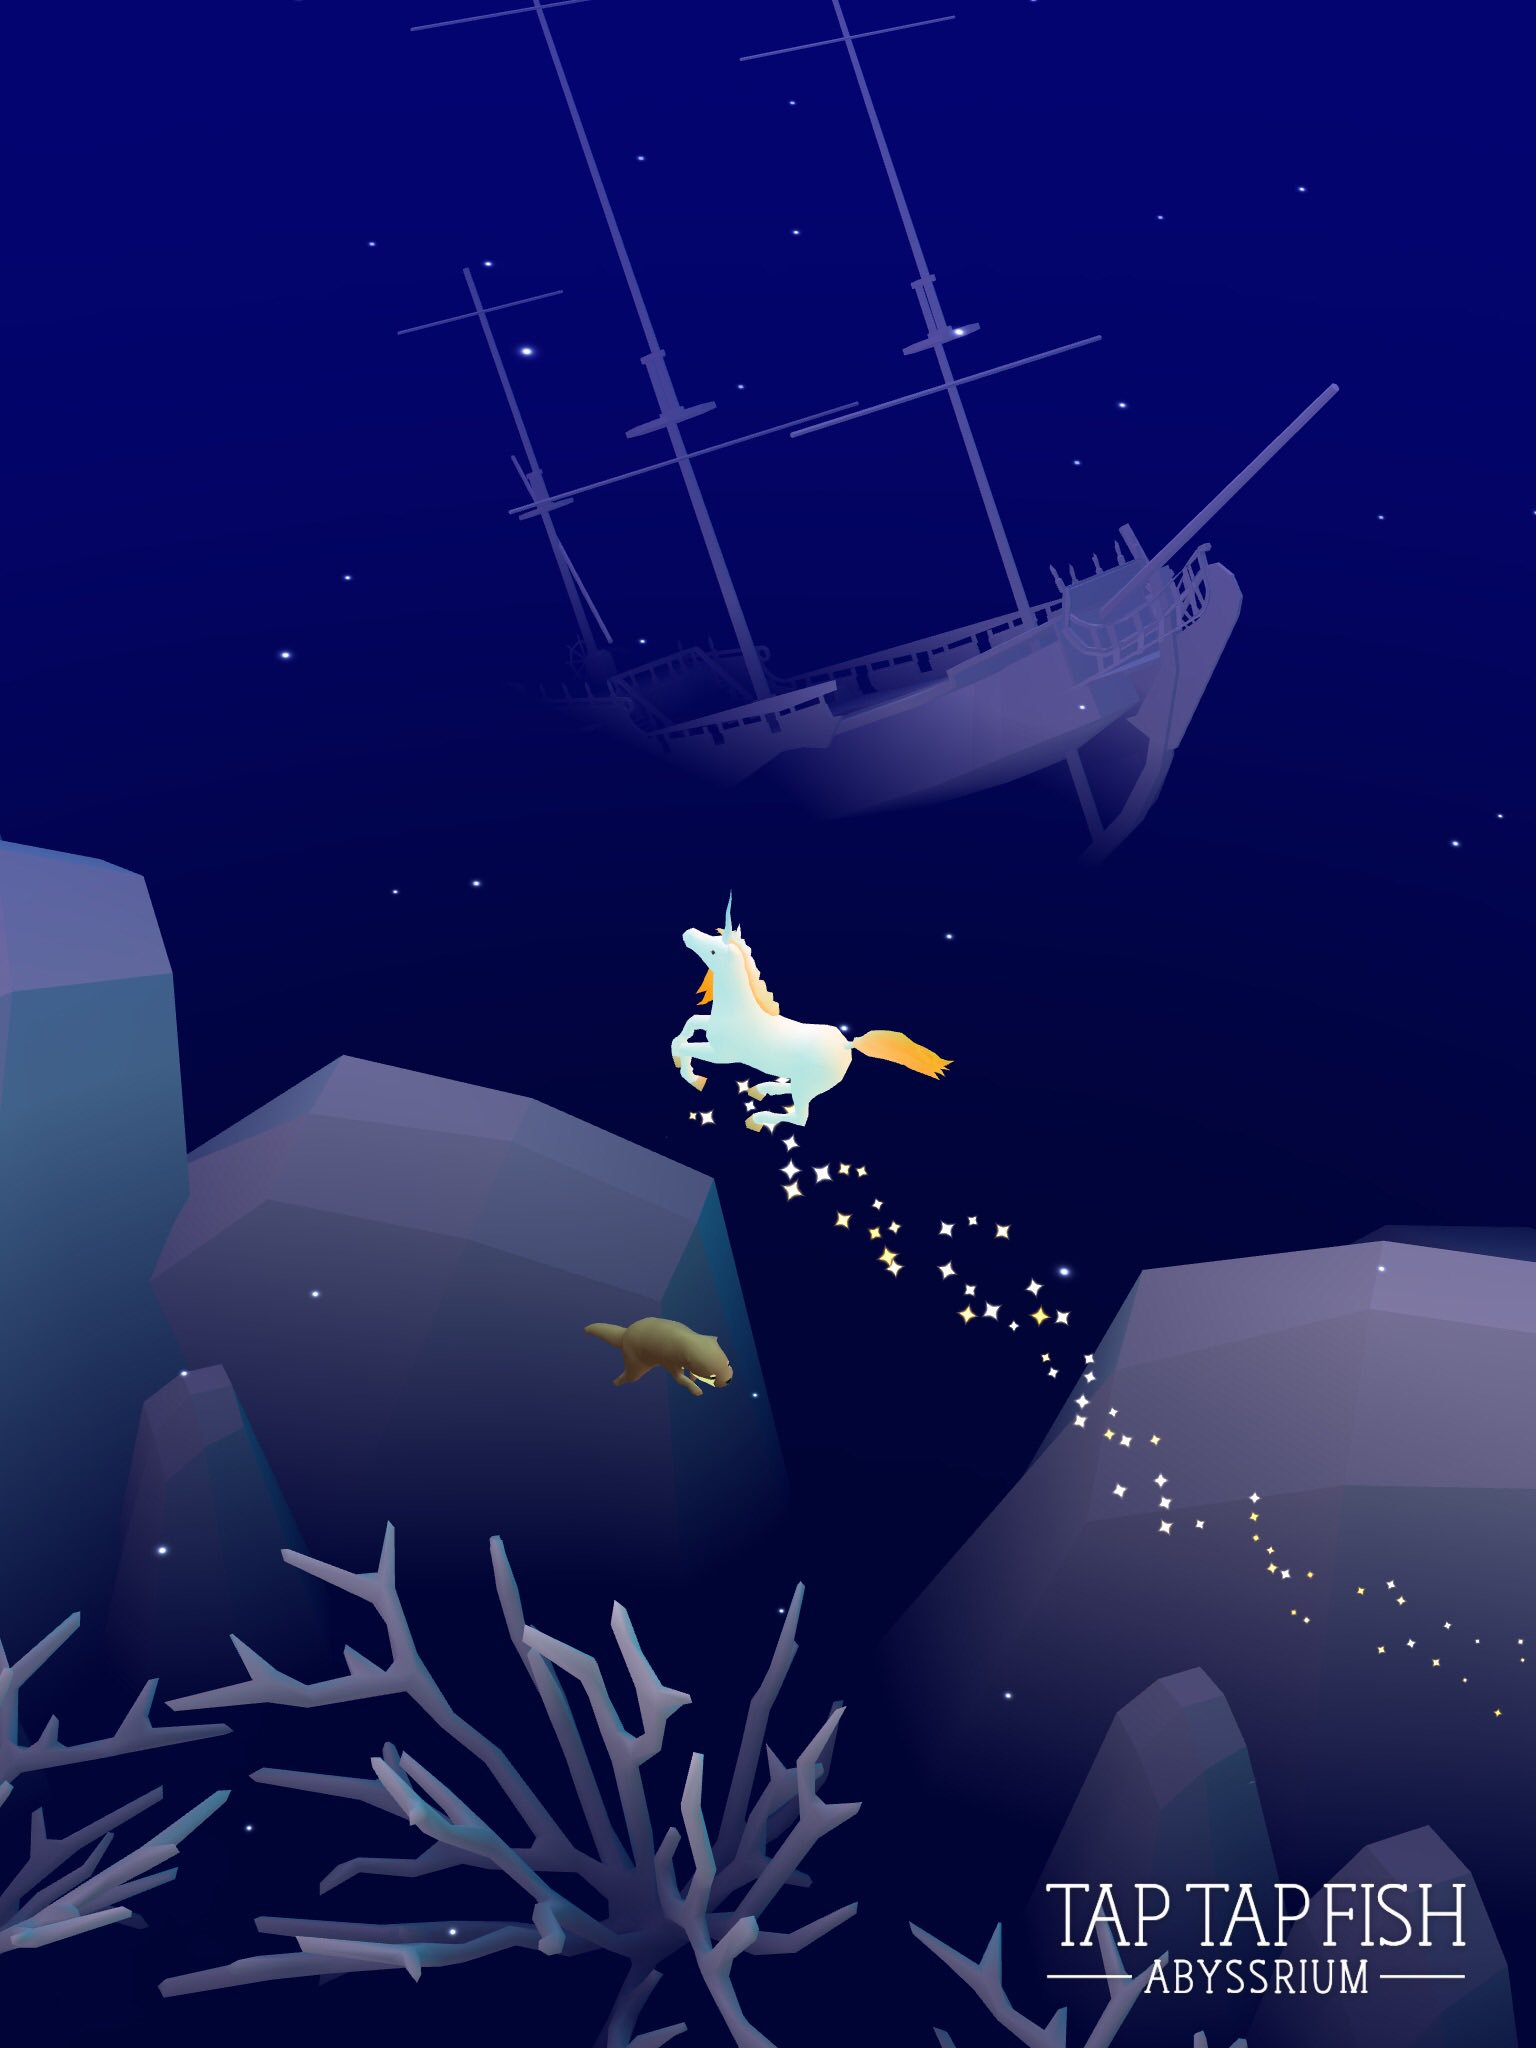 My Fall night unicorn:)  #taptapfish Download: https://t.co/jKNmJ7eMxr https://t.co/oxV0xX6Olo